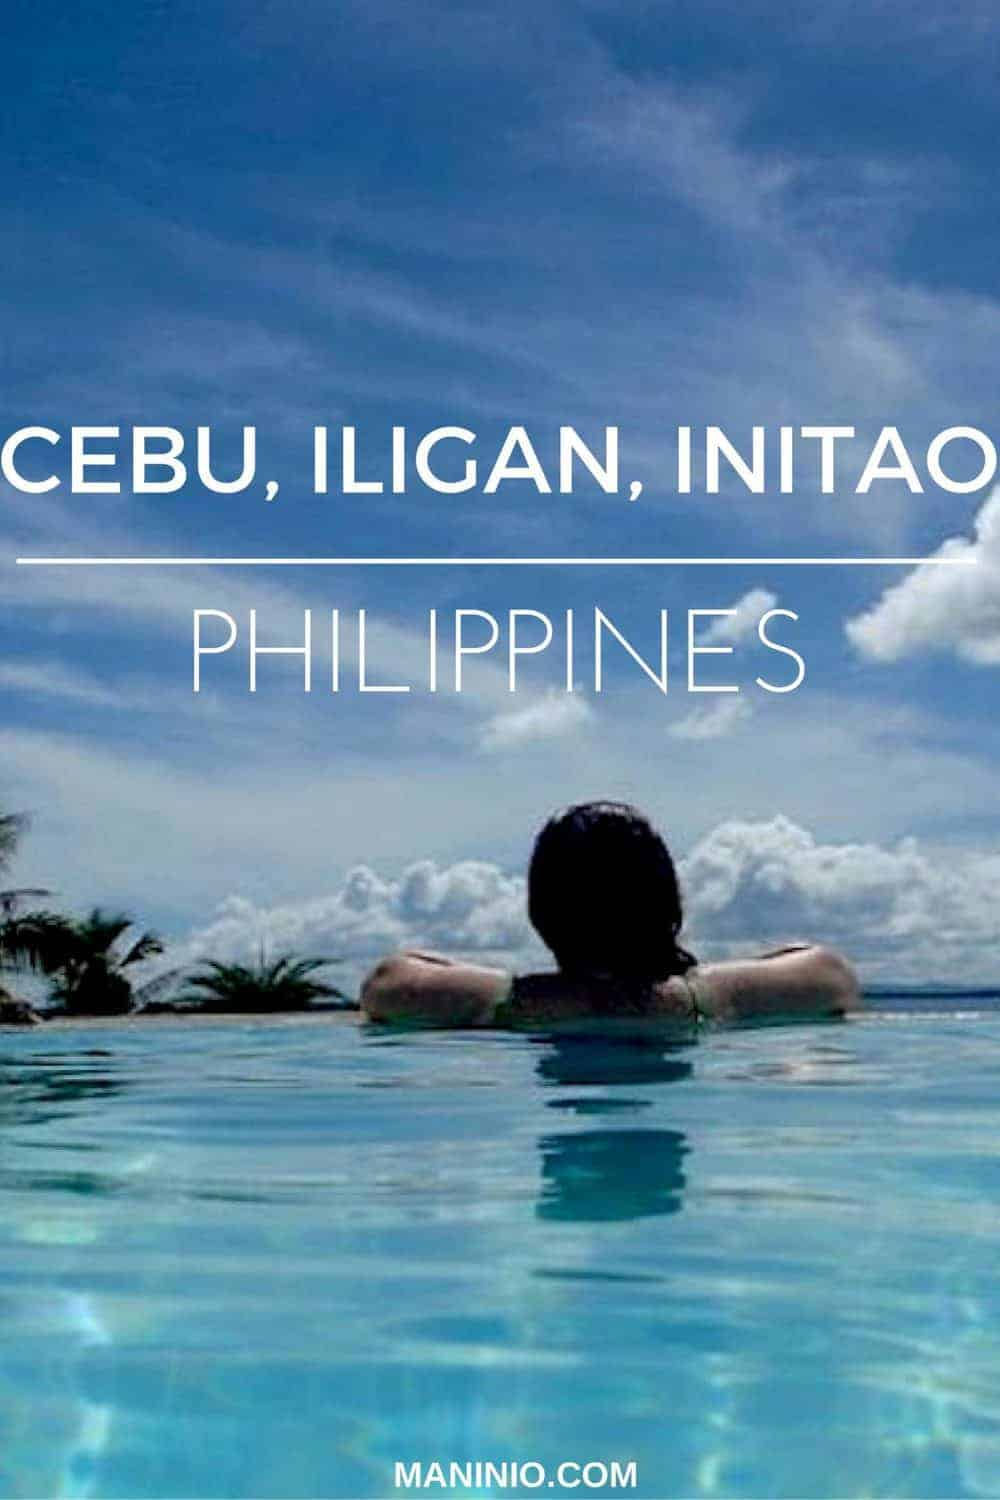 Cebu, Iligan & Initao city pinterest photo